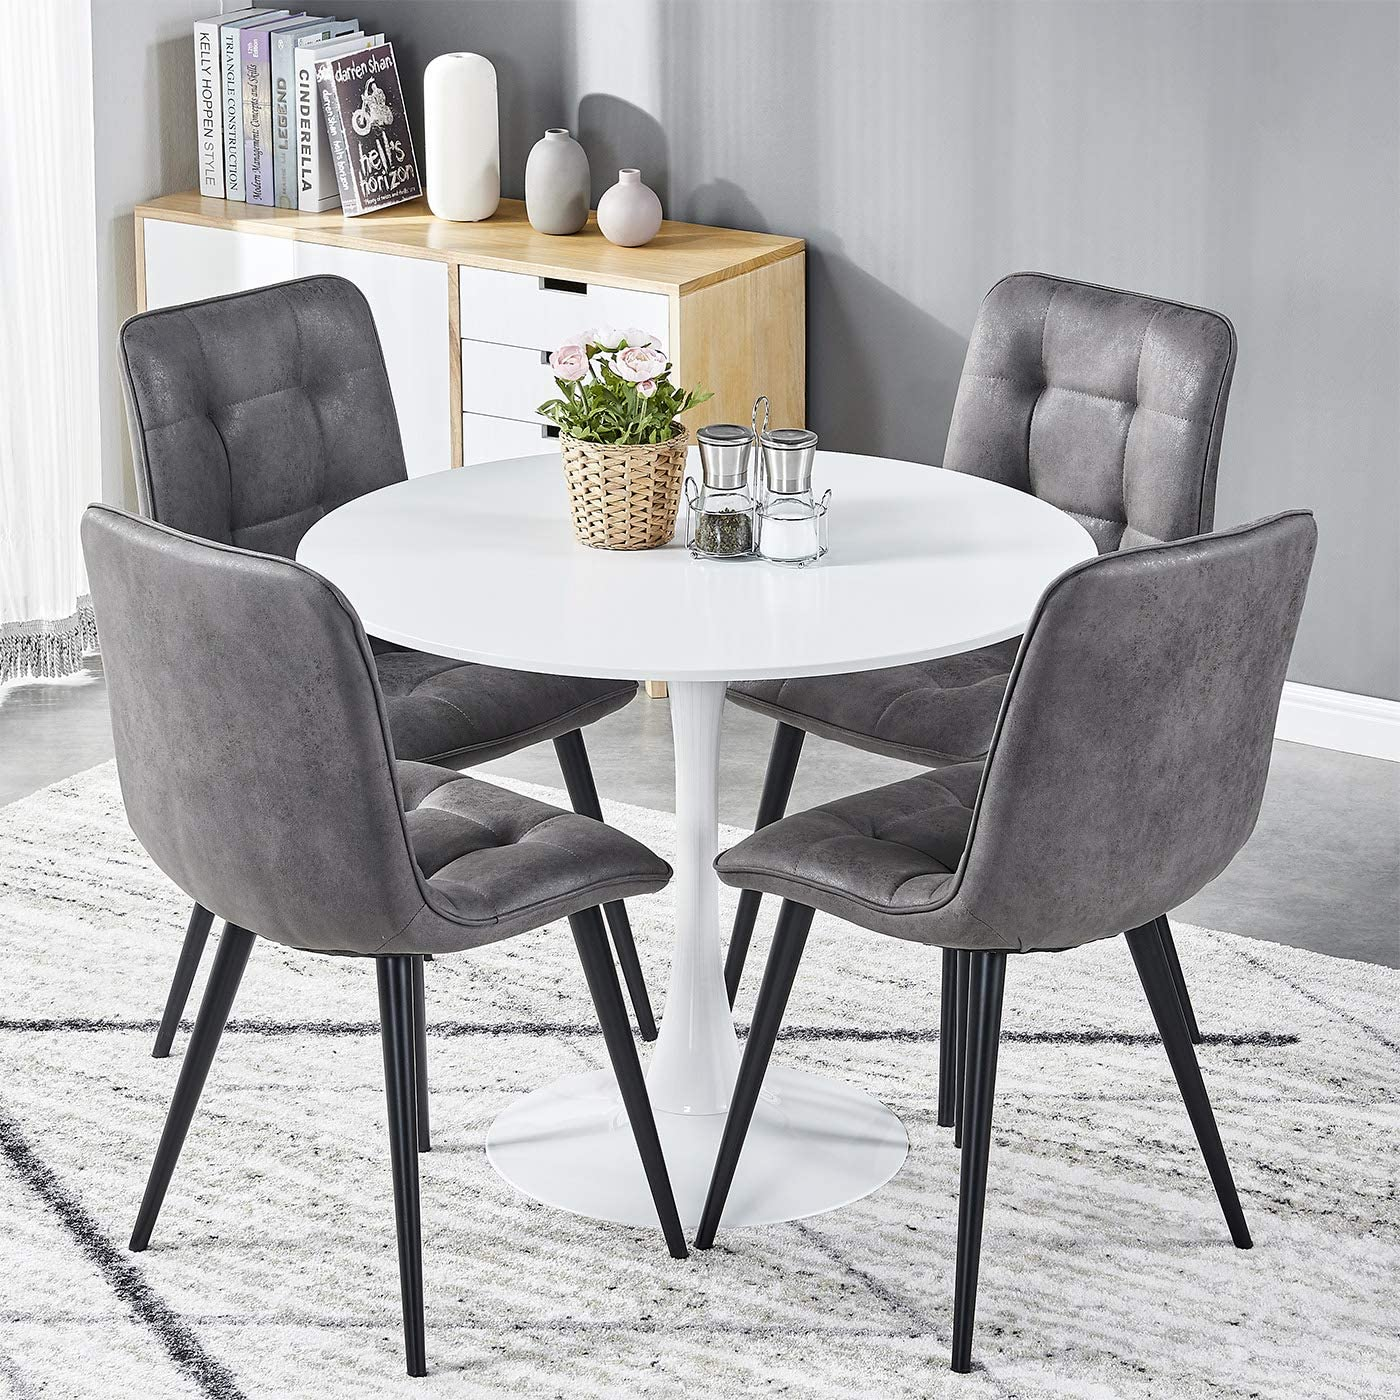 TONVISION Dining Table and Chairs Set 9 Grey Chairs with 9cm White Wooden  Table Retro Modern Home Kitchen Office Furniture White table and 9 Grey ...